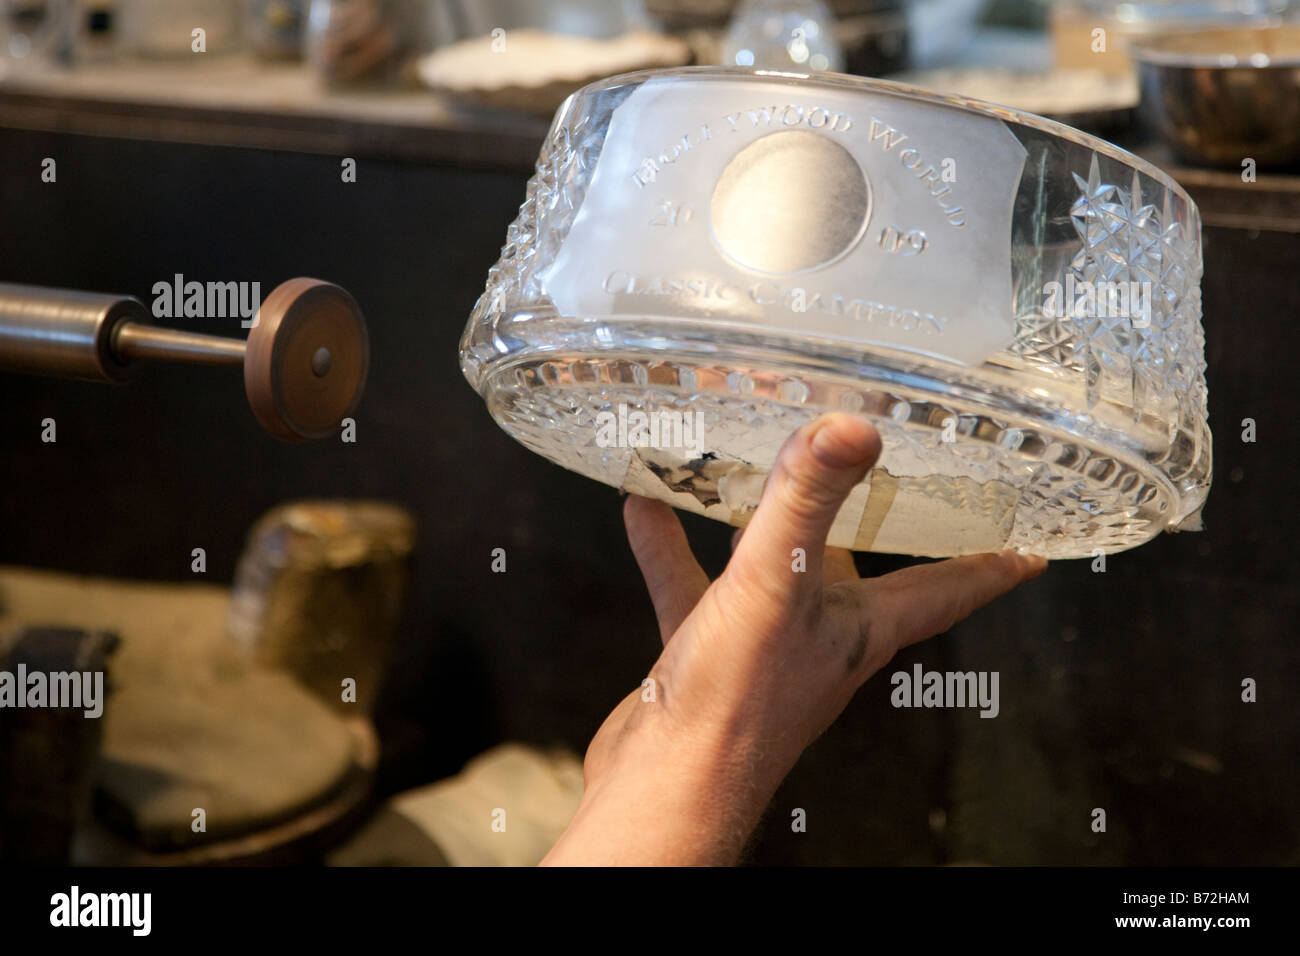 Waterford Crystal, Glass Making factory, Ireland - Stock Image